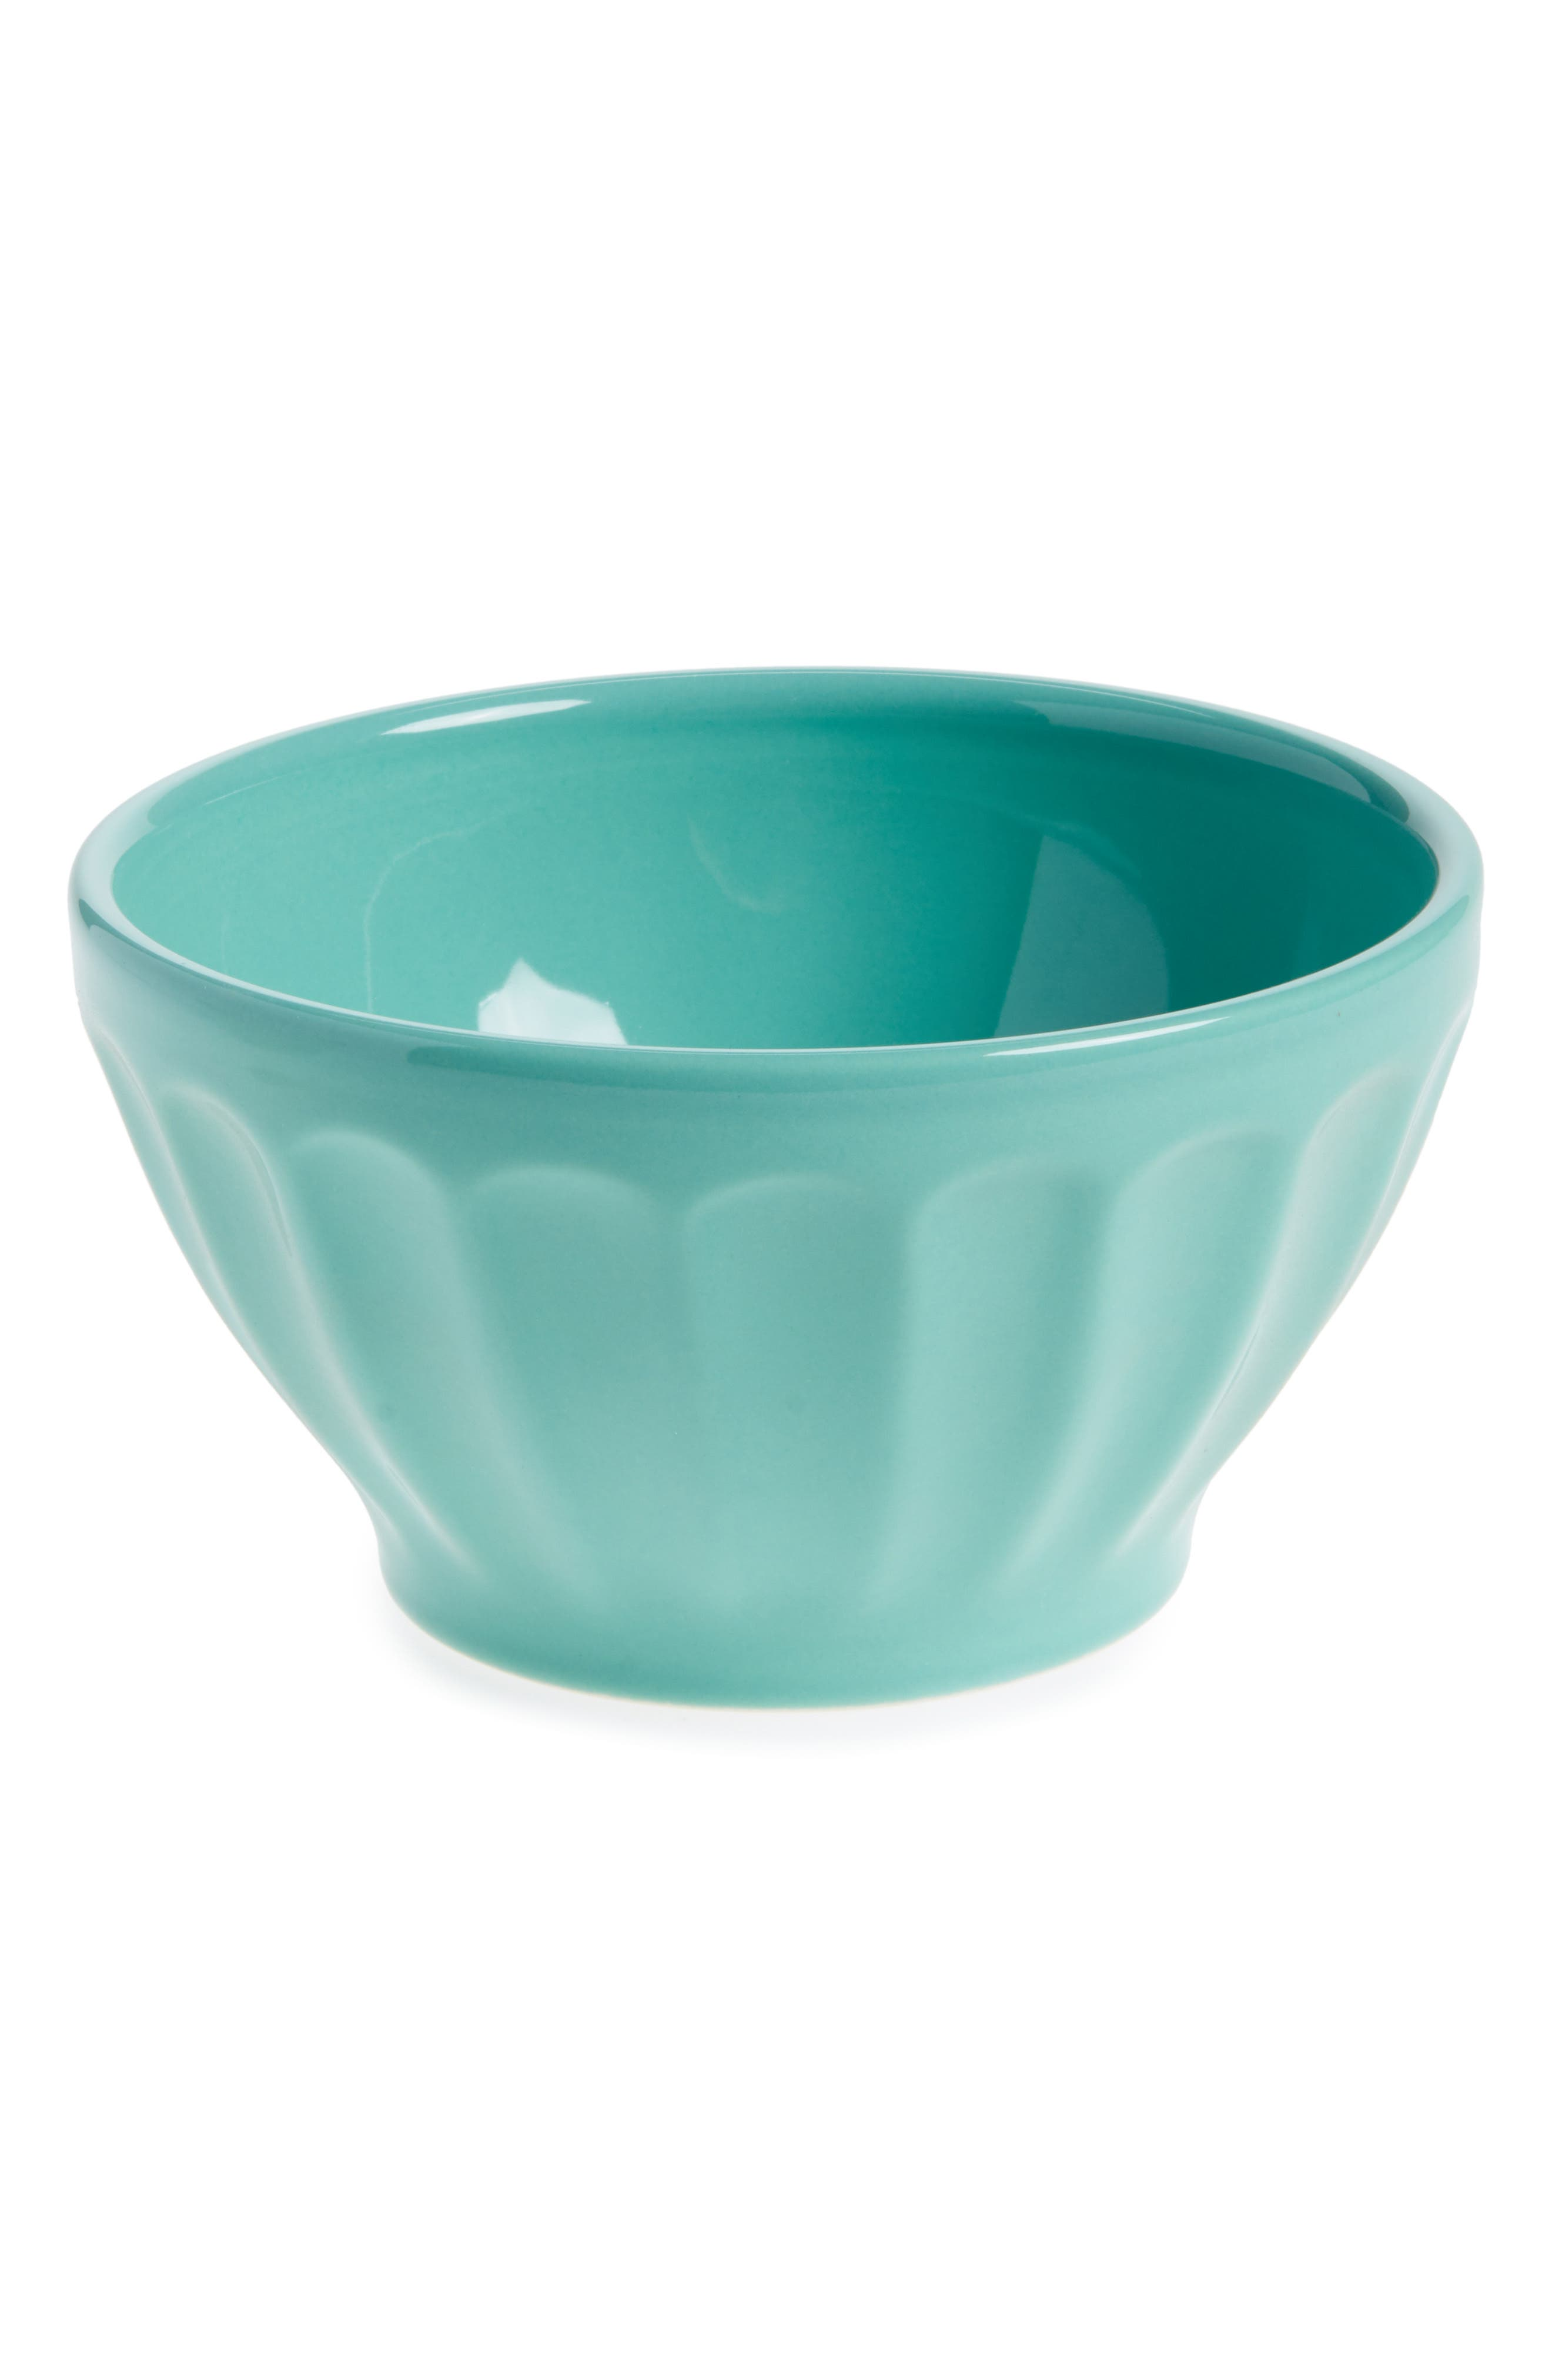 Latte Bowl,                             Main thumbnail 1, color,                             SEAFOAM